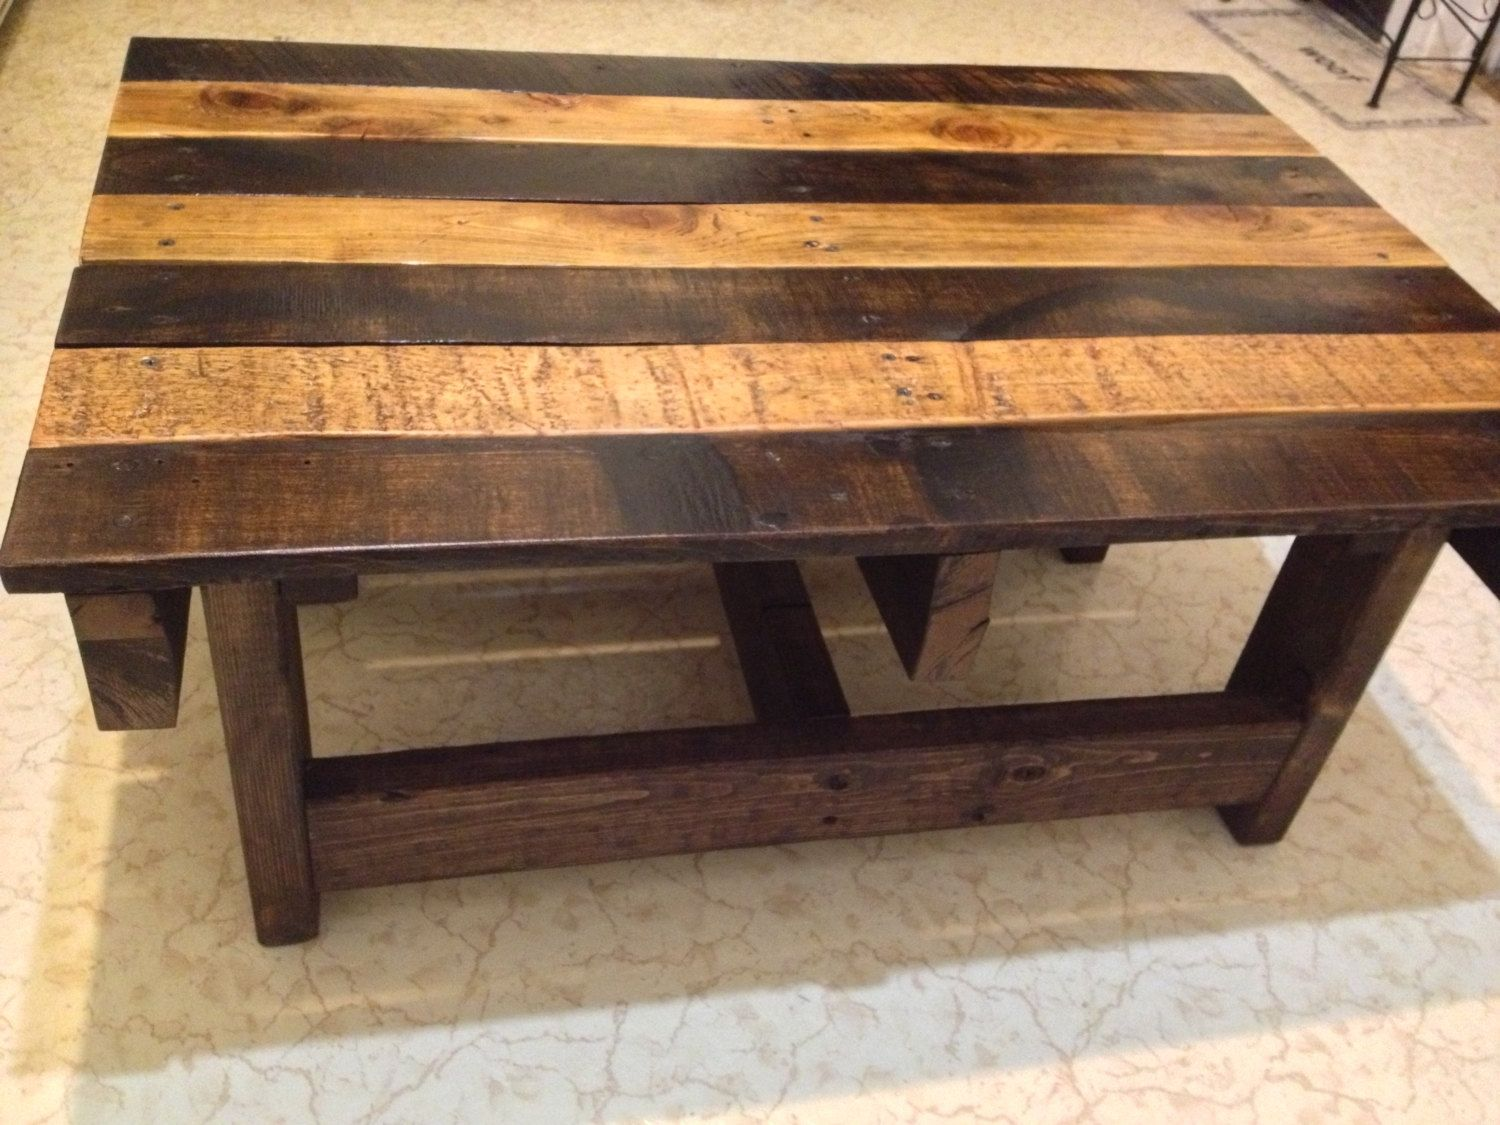 Hand Crafted Handmade Reclaimed Rustic Pallet Wood Coffee Table By Kevin Davis Woodwork